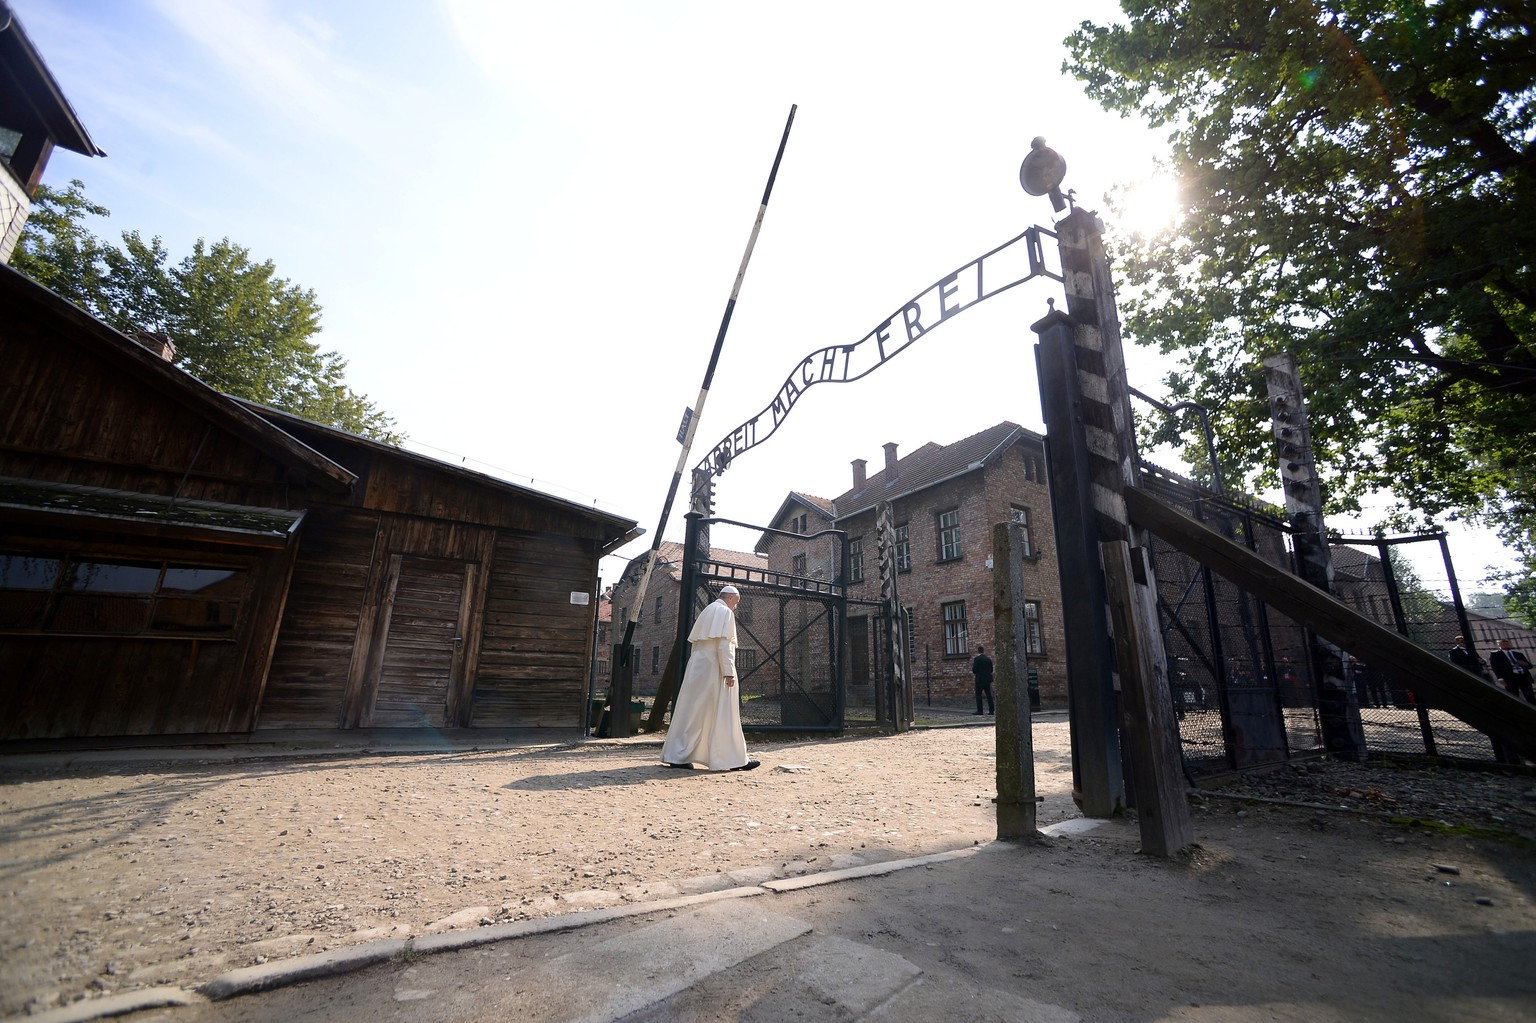 Pope Francis walks through Auschwitz's notorious gate with the sign